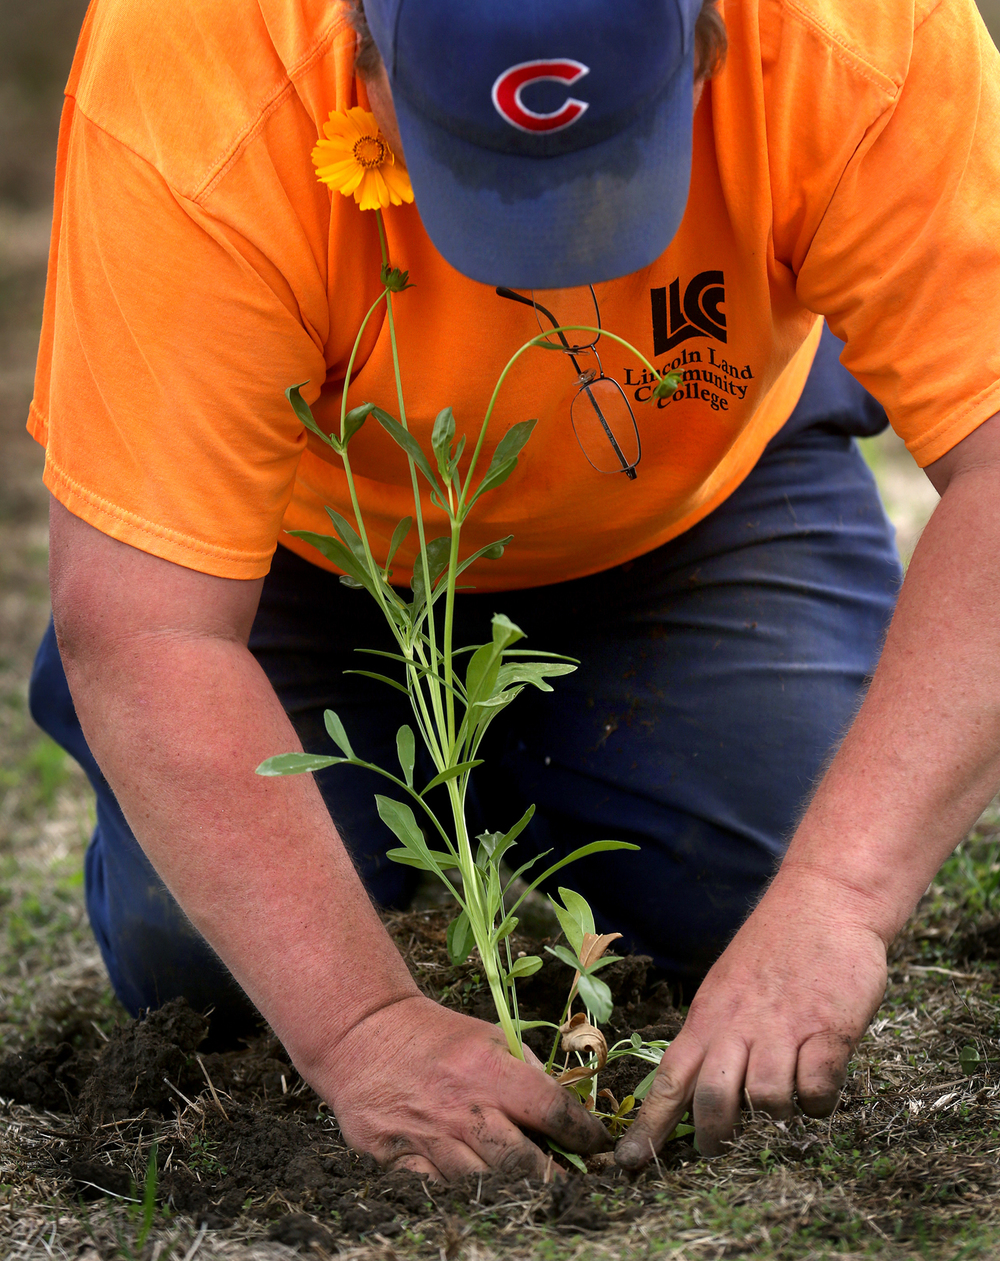 LLCC grounds maintenance employee Scott Woodrum plants a Coreopsis in the new Oak savanna native prarie area on campus Thursday morning. As part of Earth Week at Lincoln Land Community College in Springfield, employees planted approximately 260 native wildflowers on Thursday, April 21, 2016 within an Oak savanna native prairie area newly established last year on campus. The wildflowers Coreopsis, Butterfly Milkweed, Royal Catchfly and Penstemon joined approximately 30 trees including Swamp white oaks and Burr oaks previously planted on the over three-acre savanna that will be fully established in about 10-15 years. David Spencer/The State Journal-Register